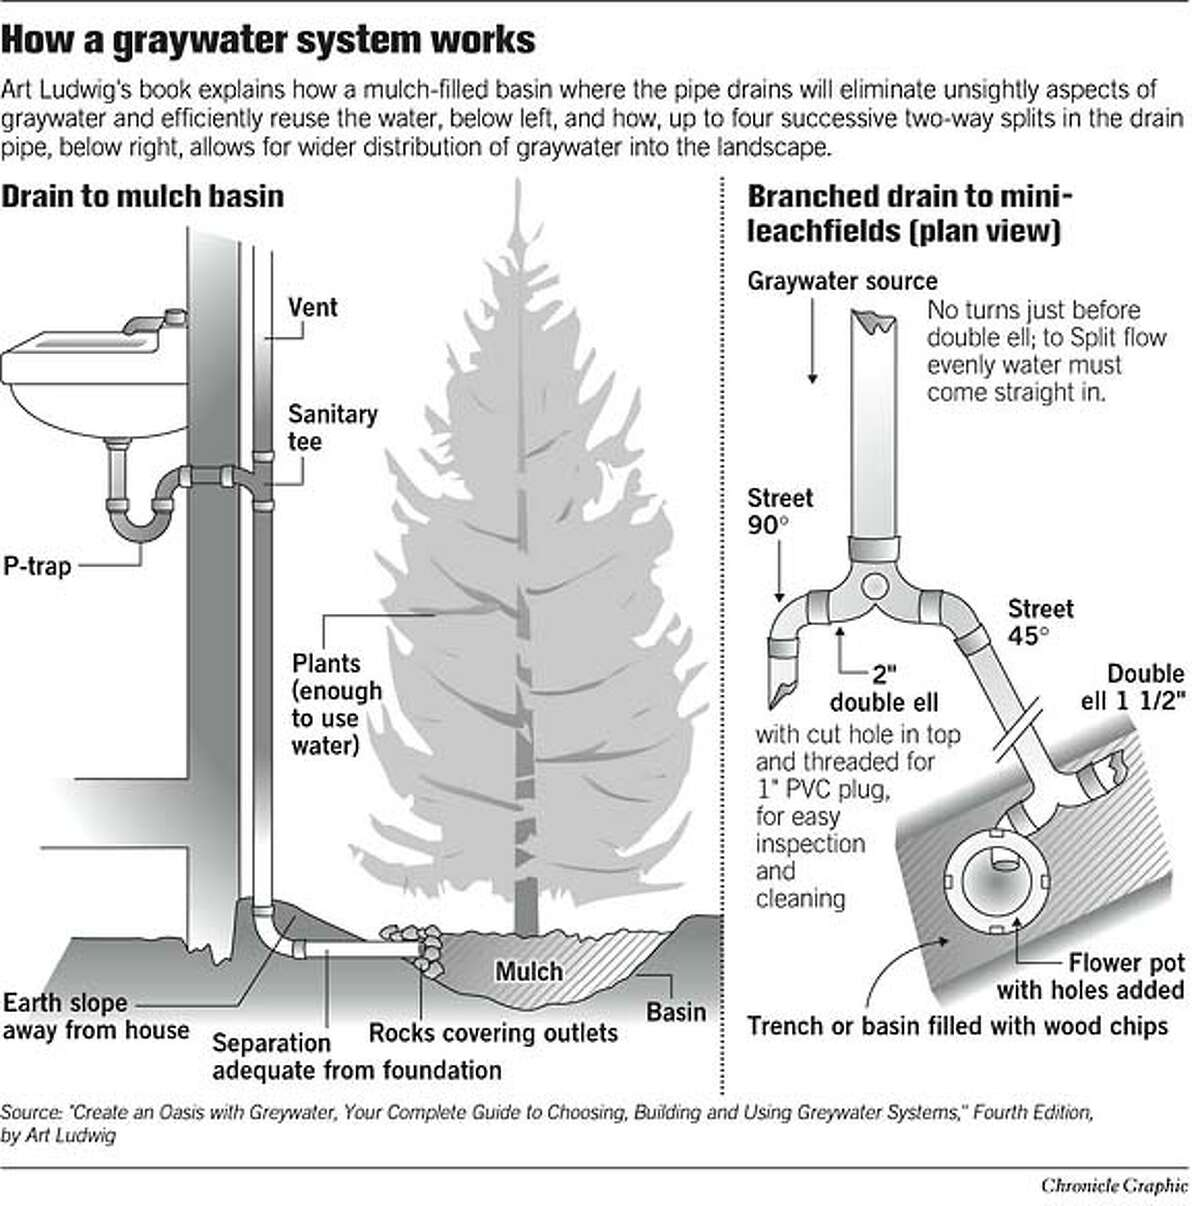 How a Graywater System Works. Chronicle Graphic